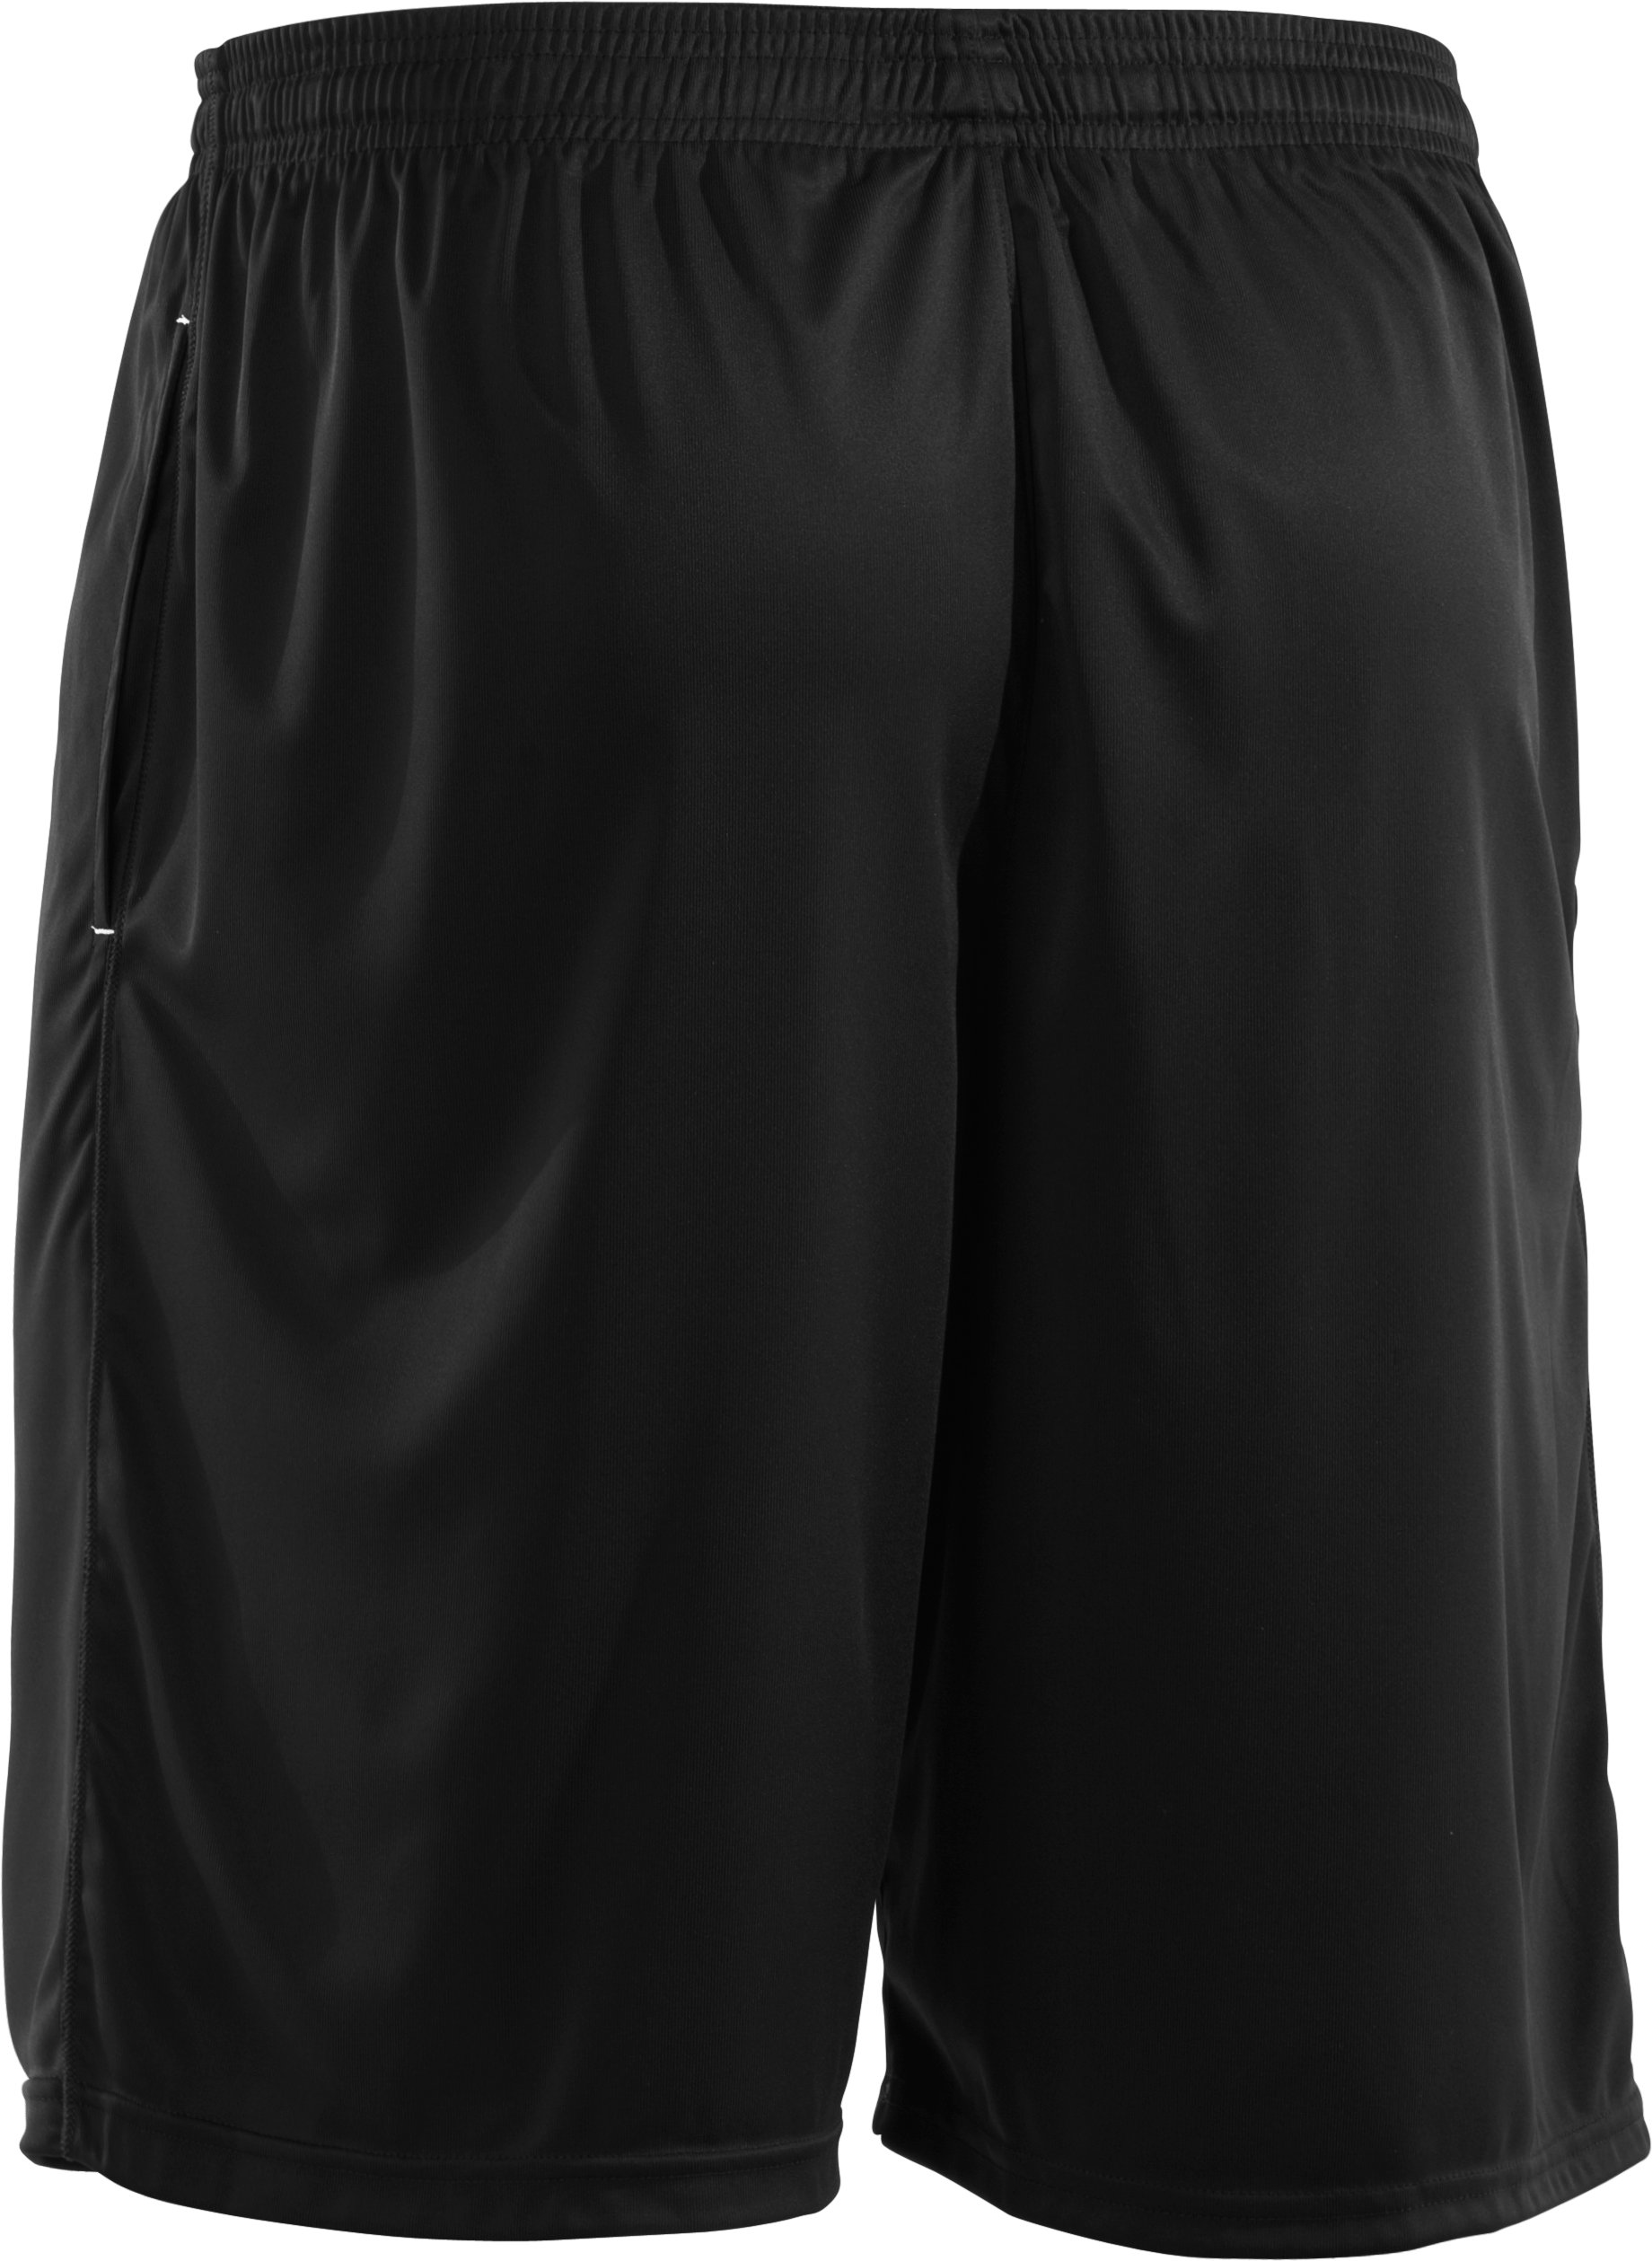 Men's UA Micro Solid Shorts, Black